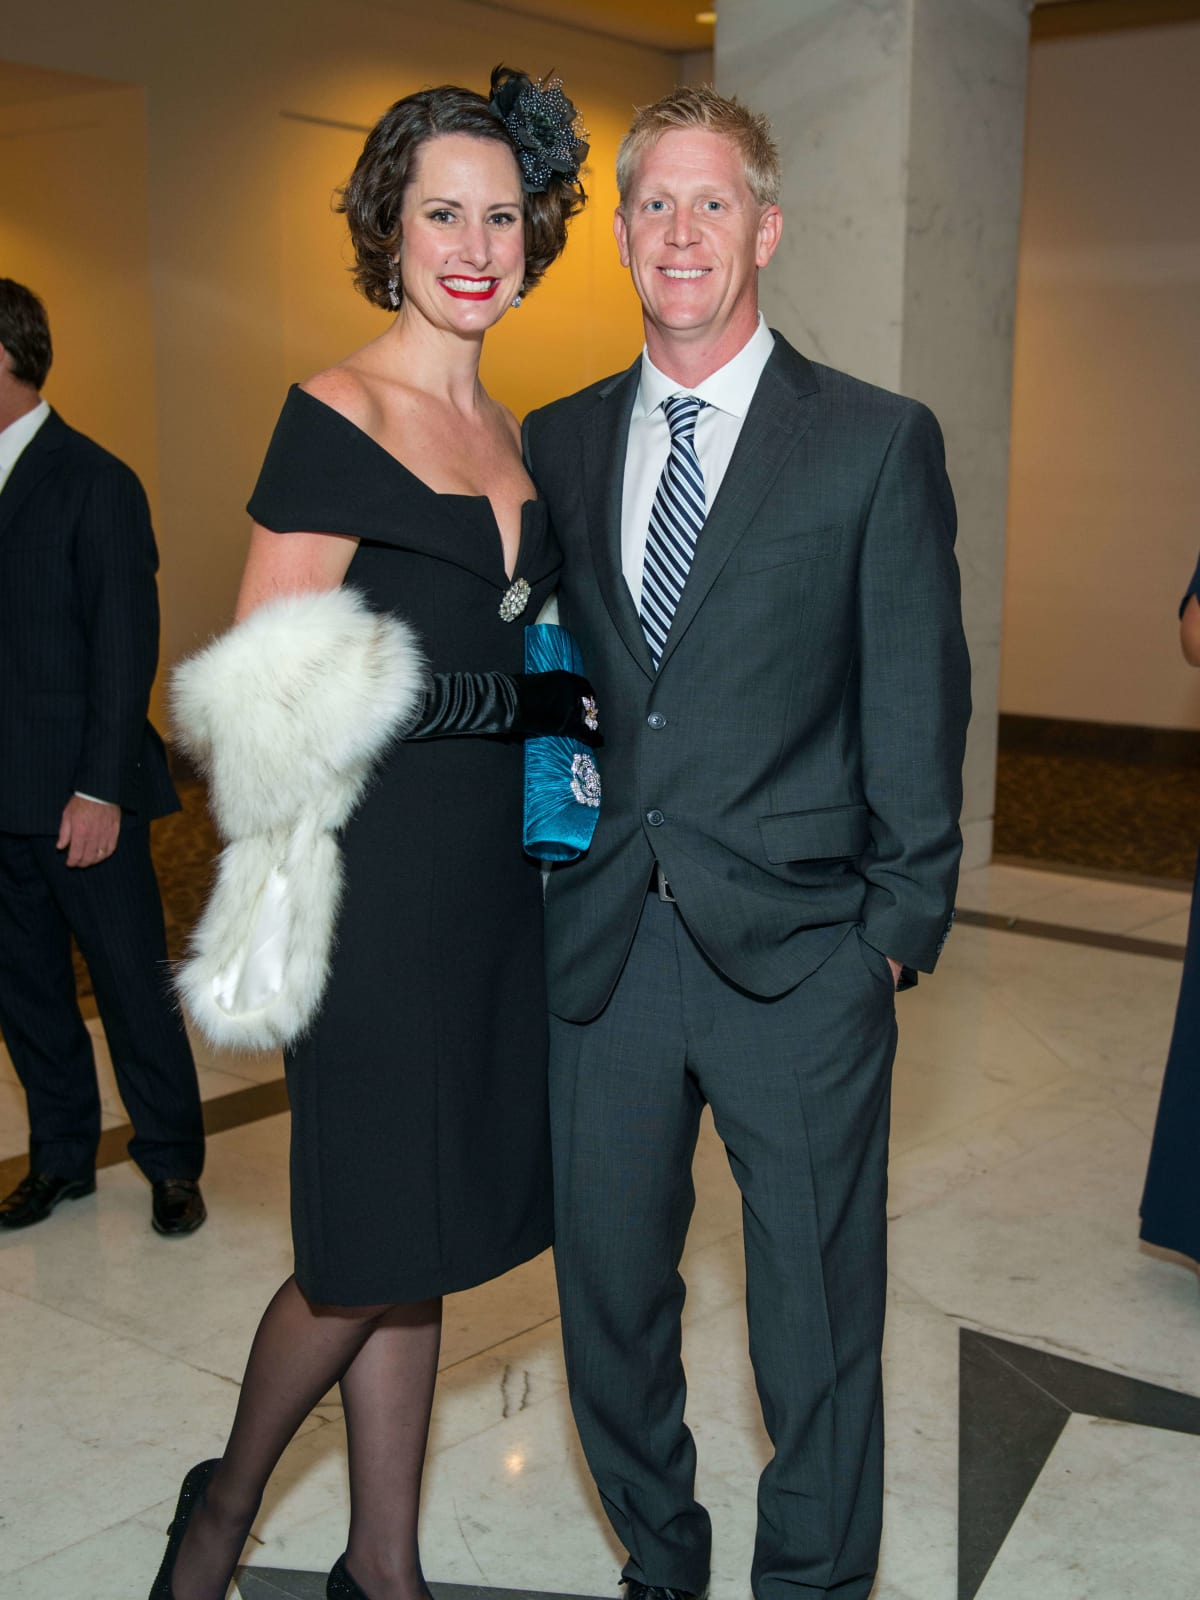 Elizabeth Baird, Michael Baird at Mission of Yahweh gala